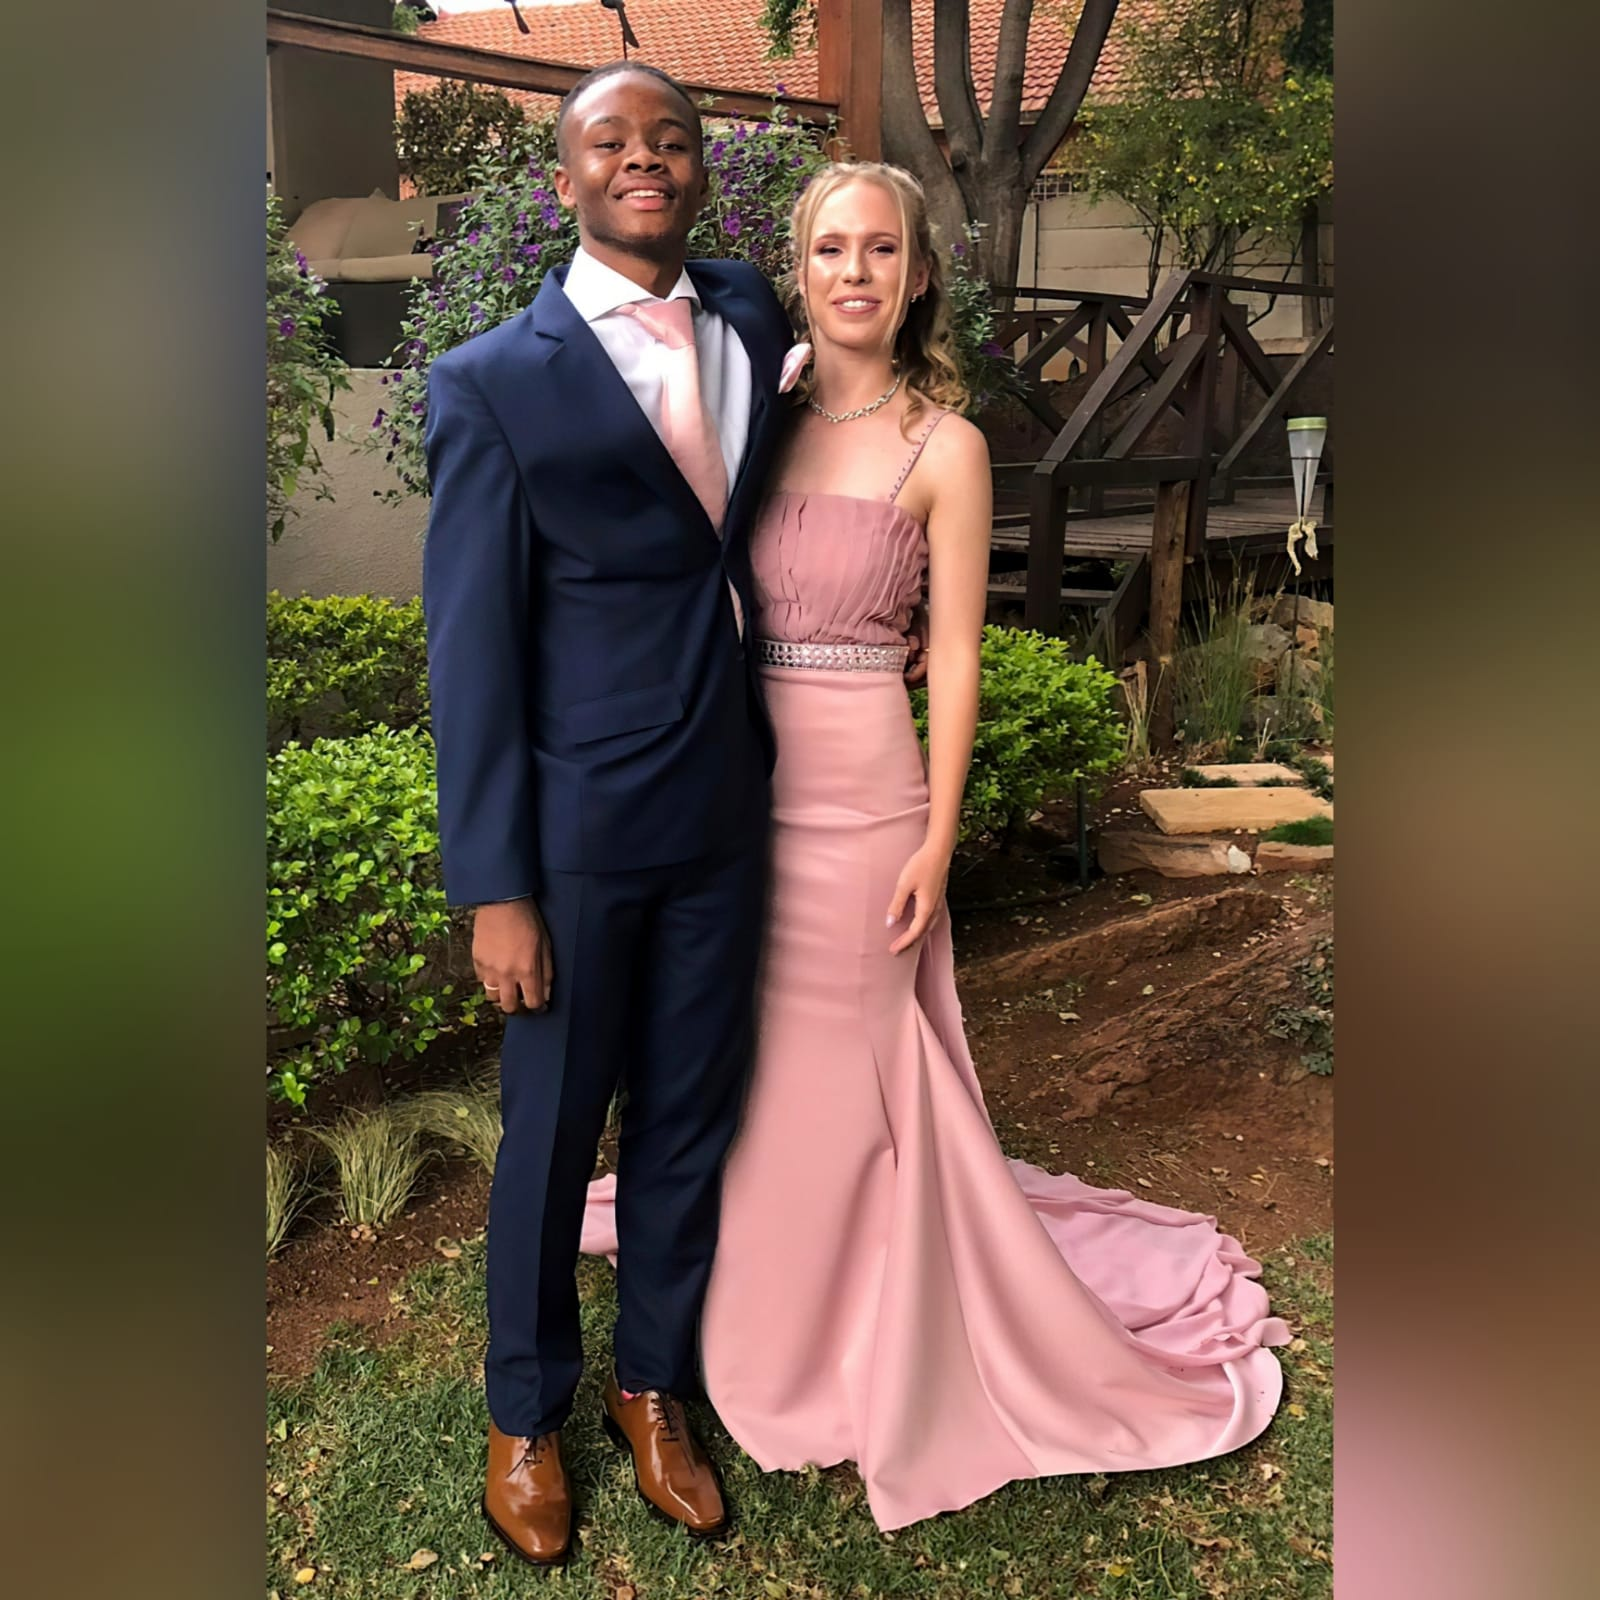 Dusty pink soft mermaid matric dress with a pleated bodice 5 dusty pink soft mermaid matric dress with a pleated bodice, with a train. Extra detachable chiffon train with a beaded belt and removable shoulder straps